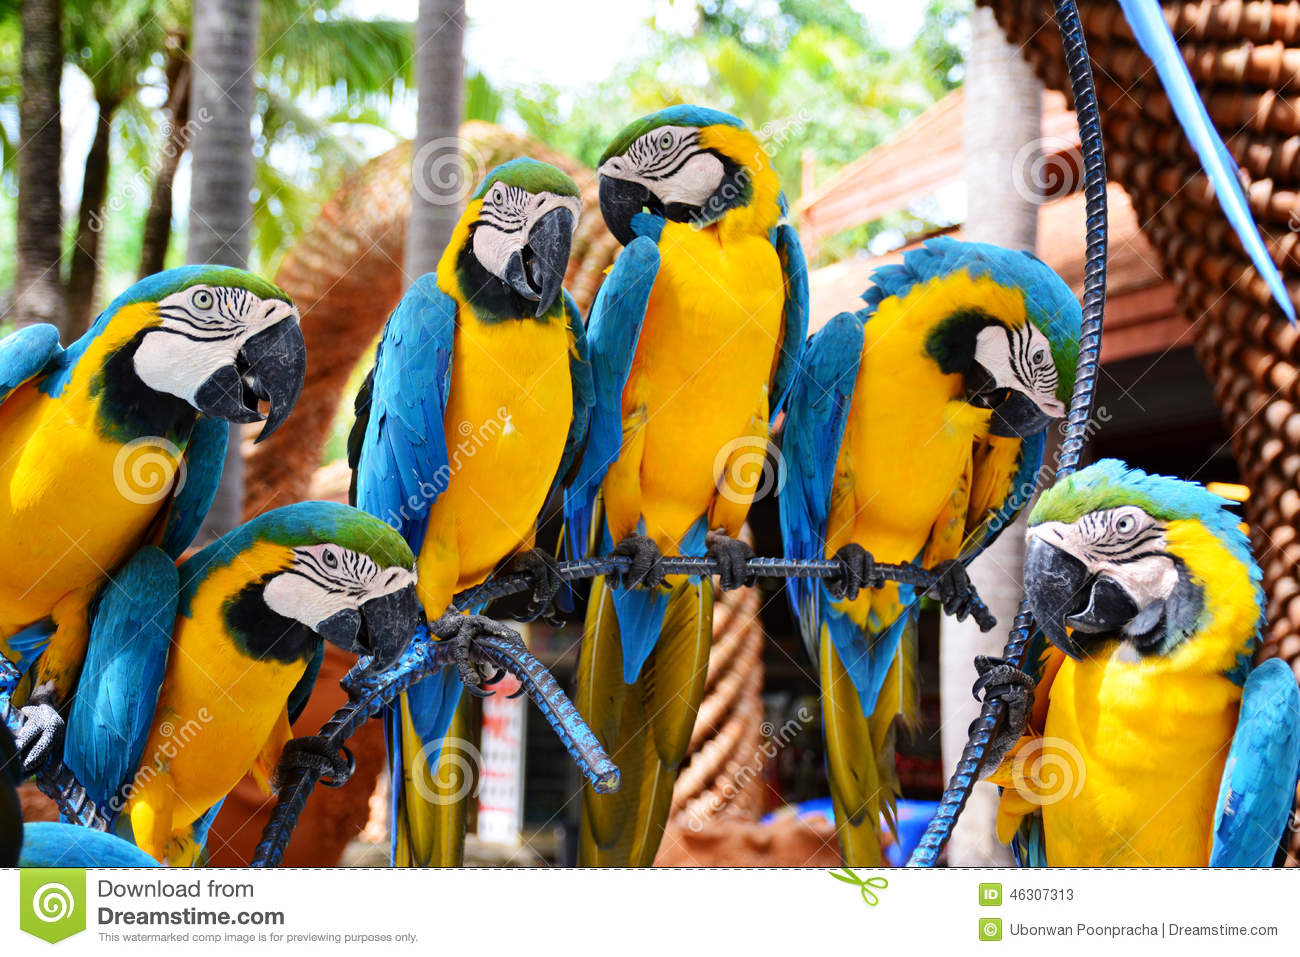 Group Of Blue And Yellow Macaw Birds. Stock Photo - Image: 46307313 Group Of Colorful Birds